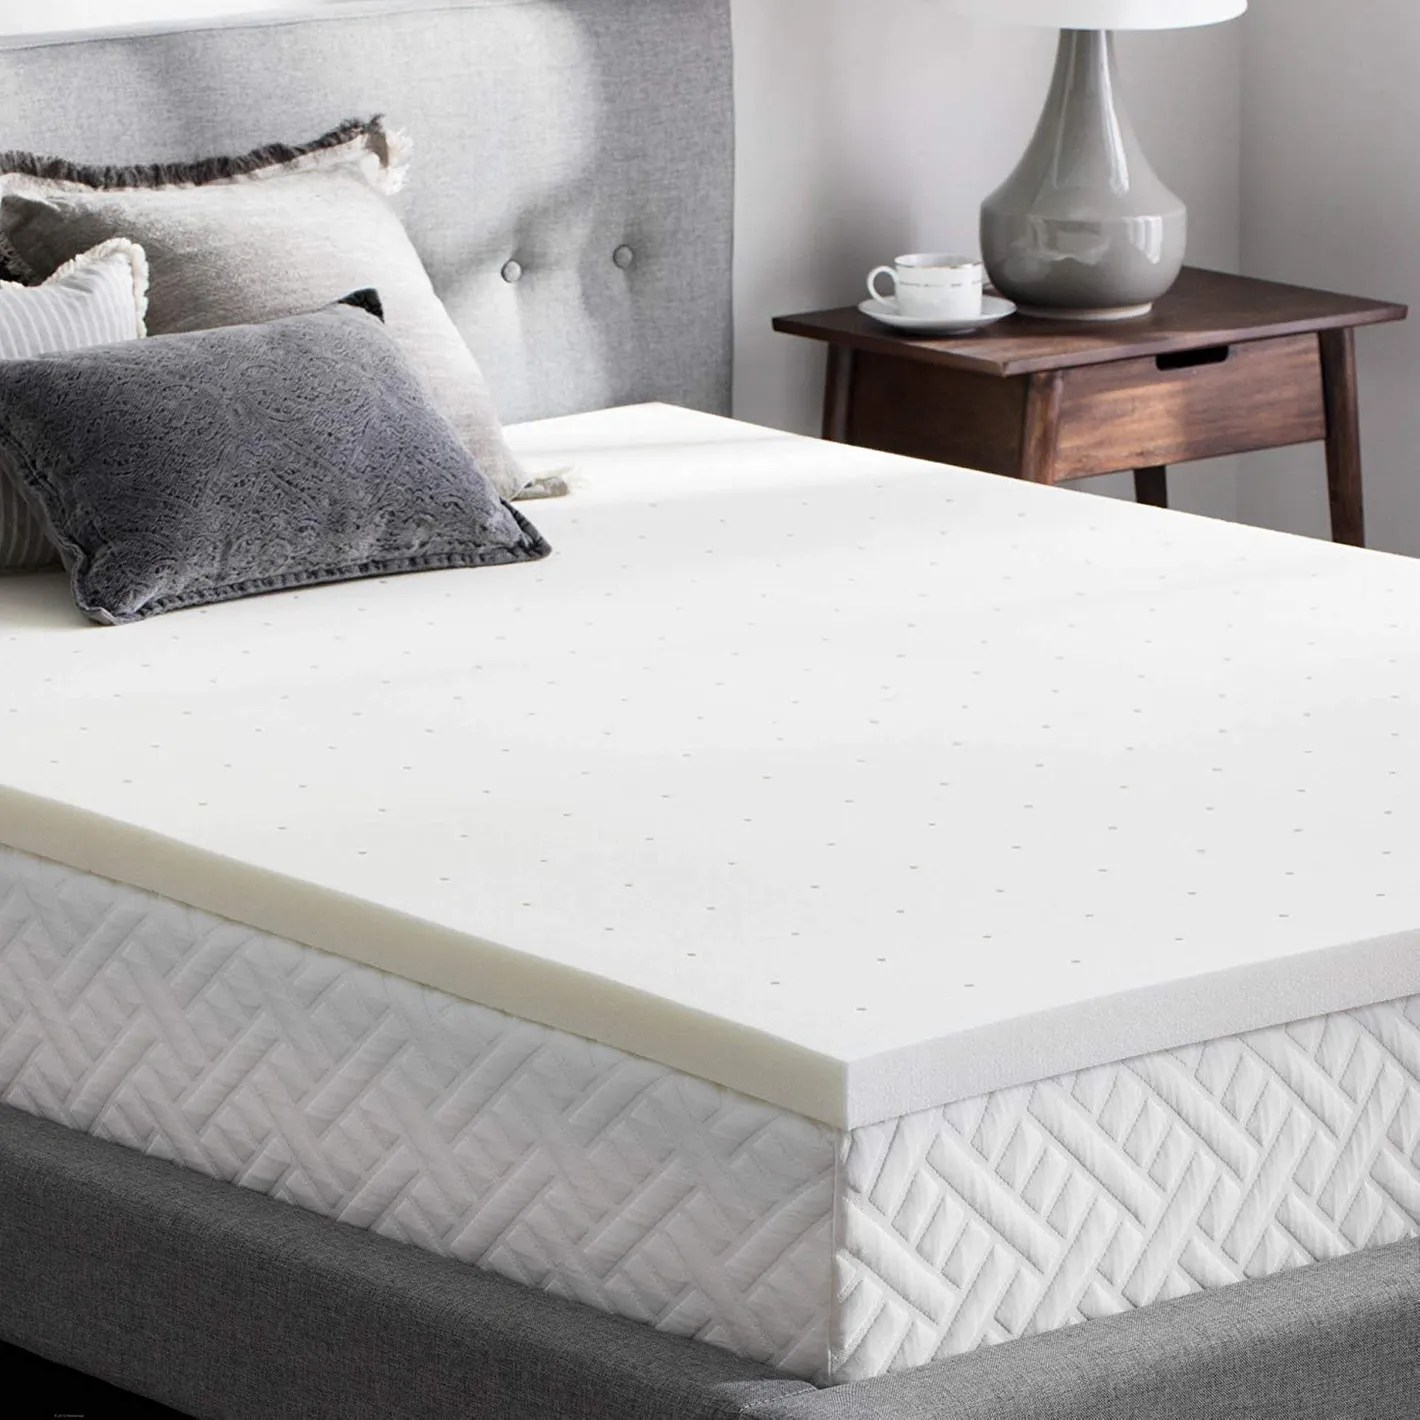 Wool Mattress Pad Reviews Weekender 2 Inch Memory Foam Mattress Topper